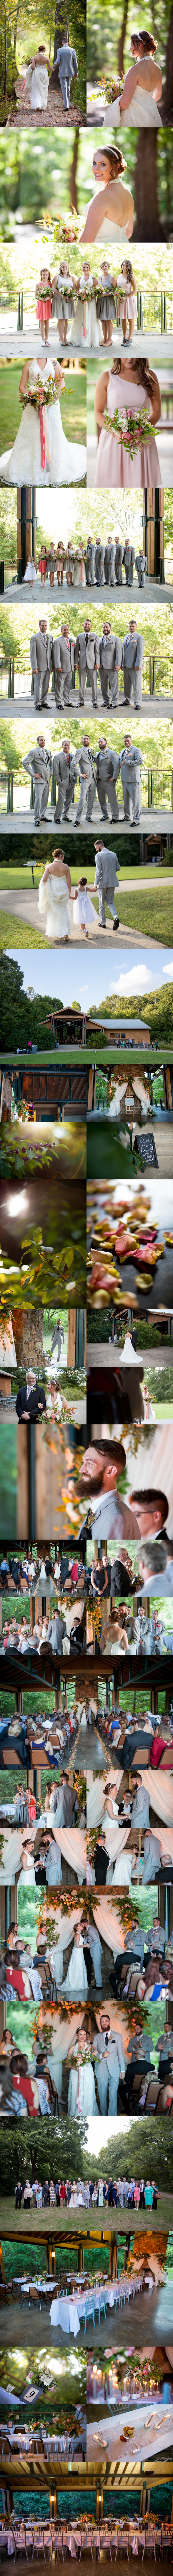 lichtermanwedding_collage2